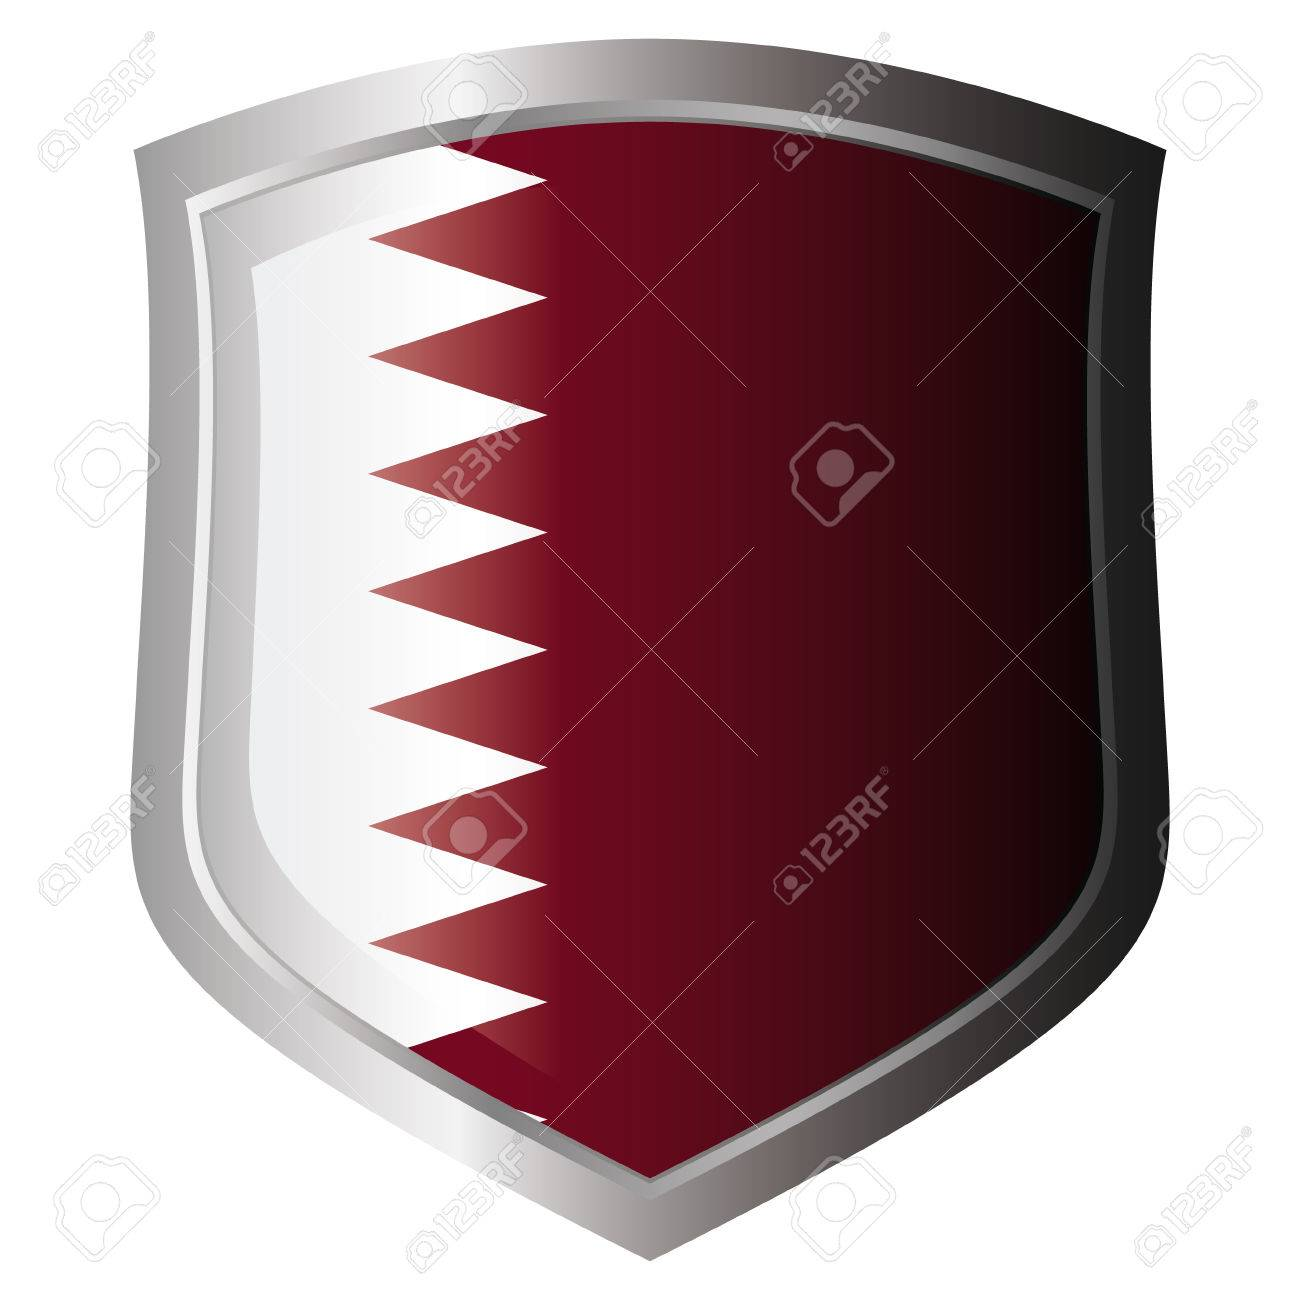 qatar vector illustration flag on metal shiny shield. Collection of flags on shield against white background. Isolated object. Stock Vector - 6030216